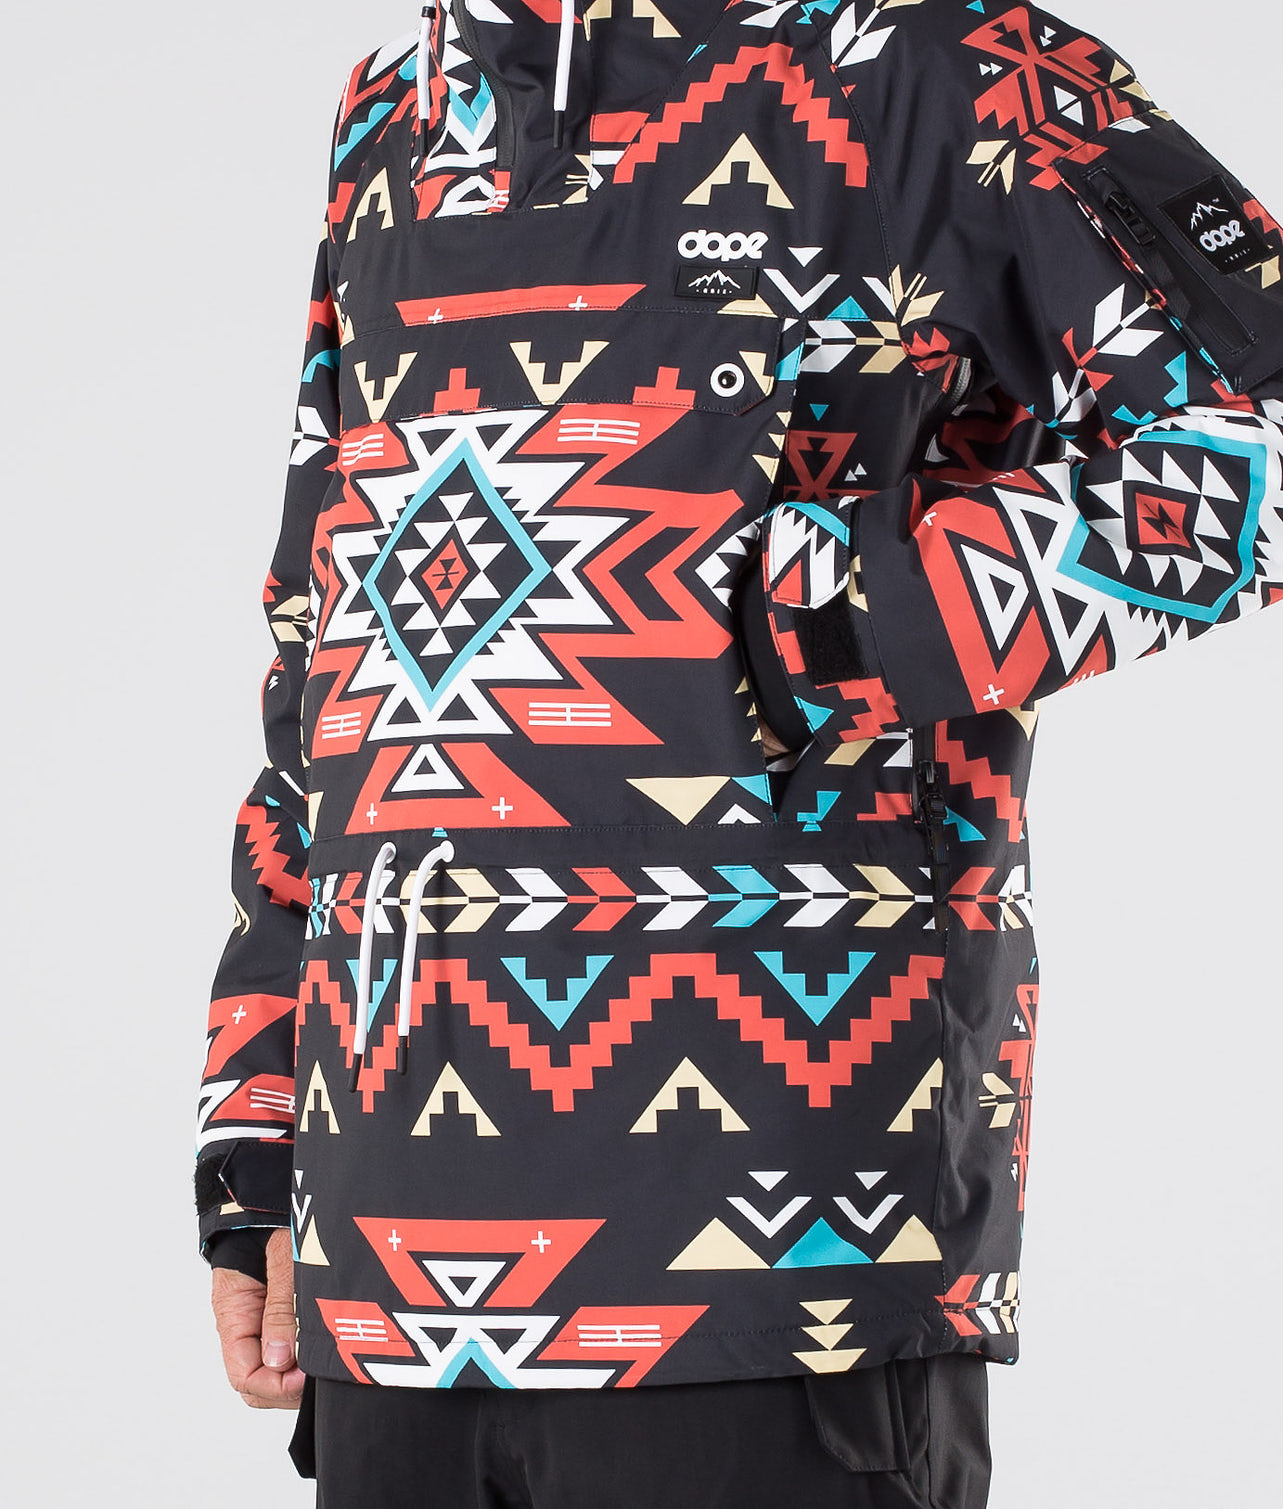 Buy Annok Snowboard Jacket from Dope at Ridestore.com - Always free shipping, free returns and 30 days money back guarantee